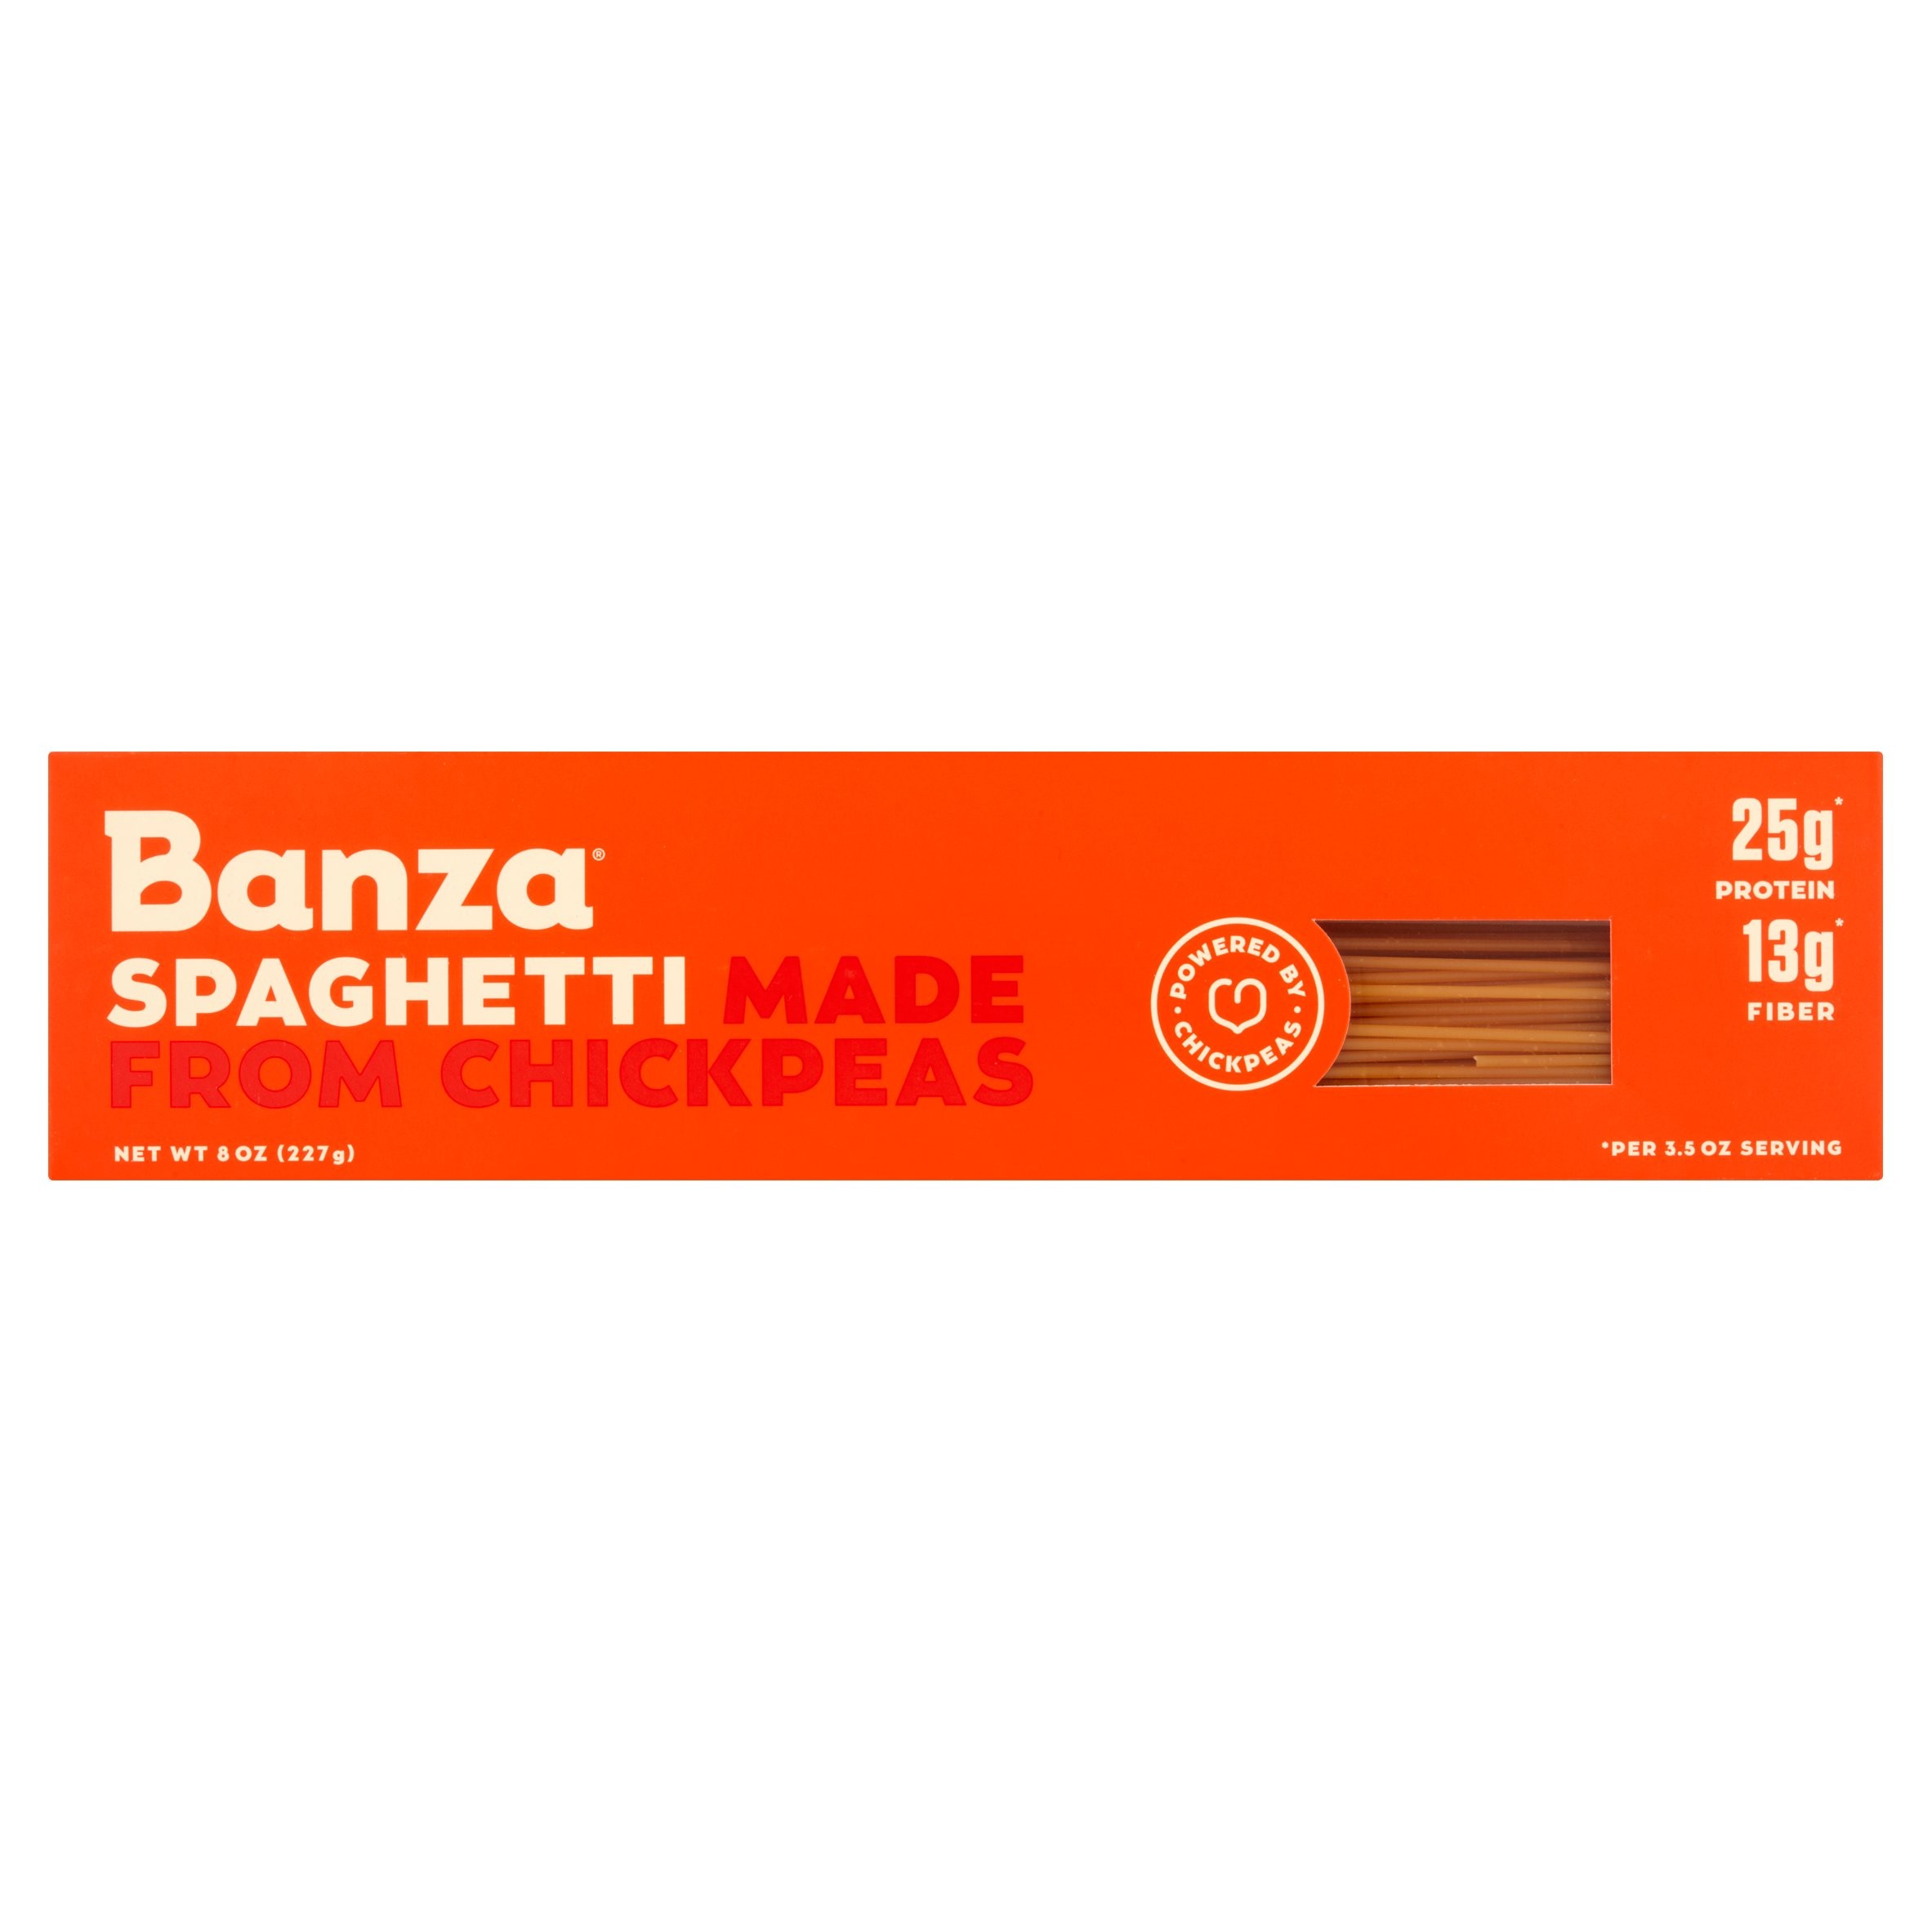 Banza Spaghetti Made from Chickpeas, 8 oz, 12 pack